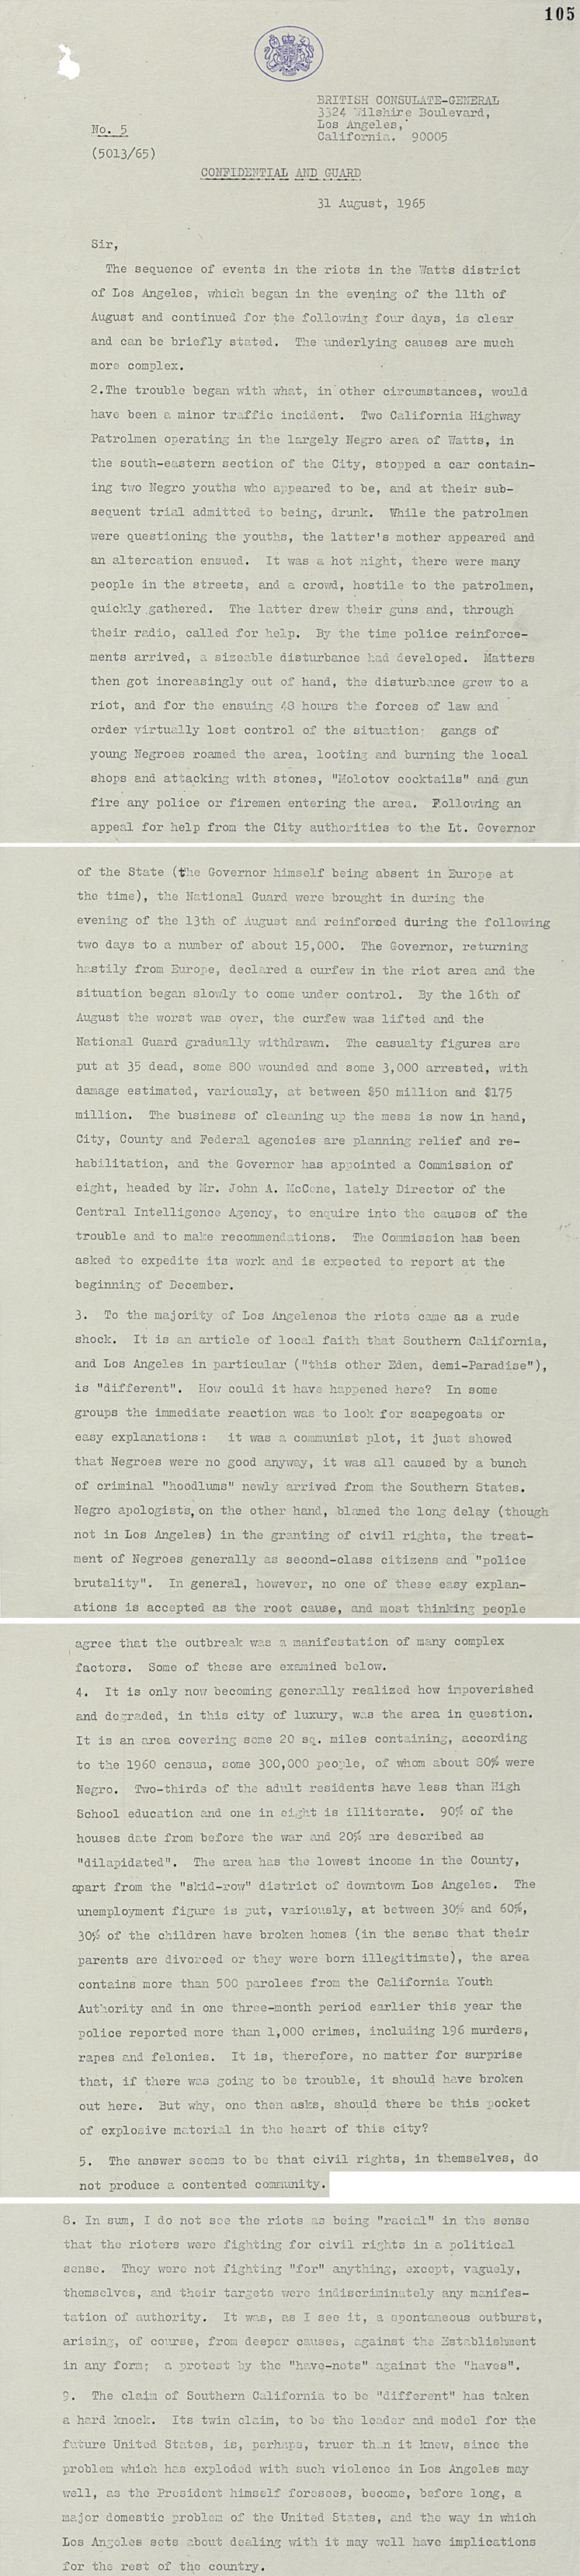 Letter from British Consul in Los Angeles to Sir Patrick Dean, British Ambassador in Washington describing the course of the LA riots, 31st August 1965 (FO 371/179611)